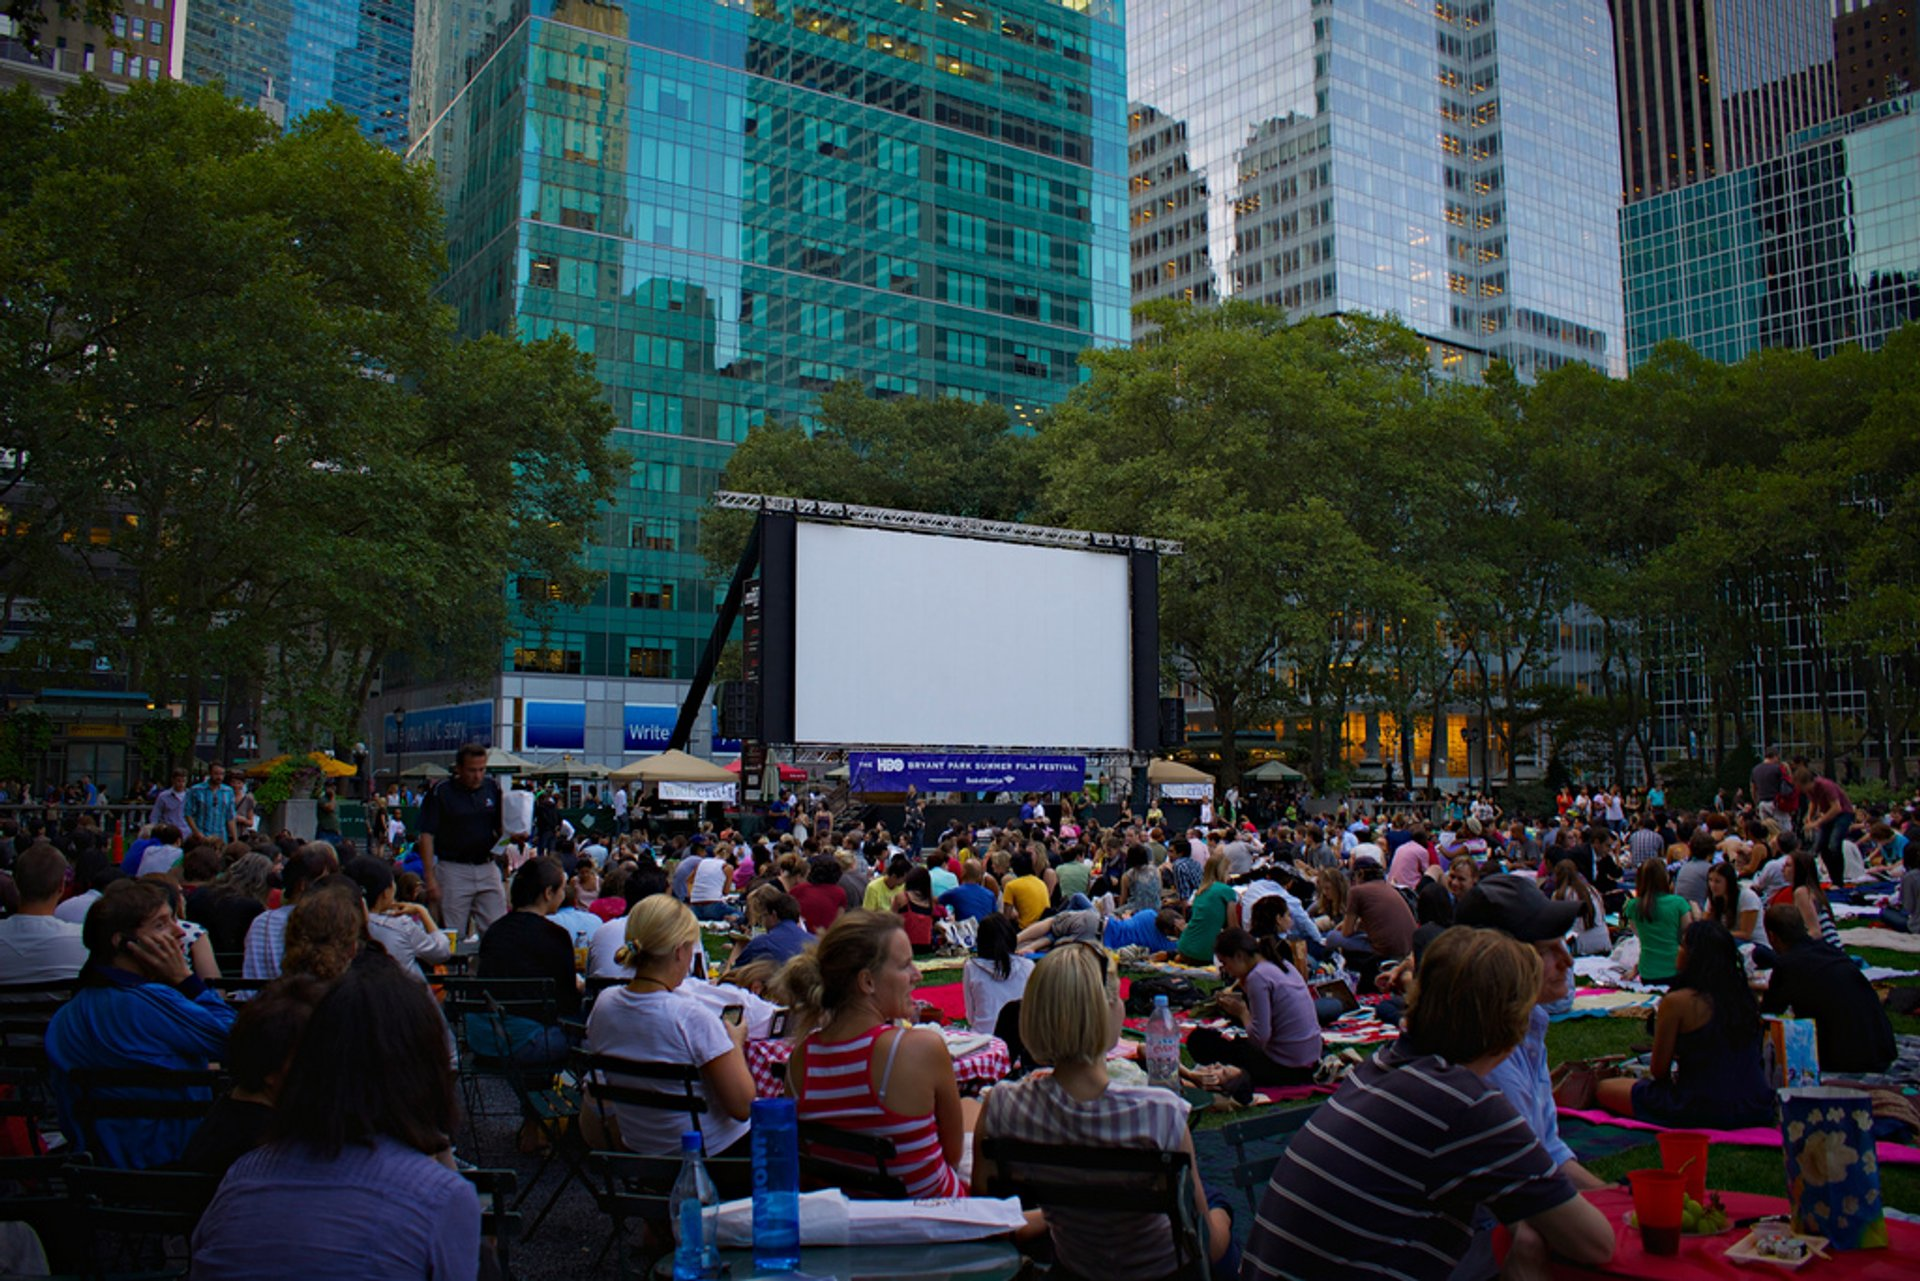 Bryant Park, New York. HBO Summer Film Festival. 2020